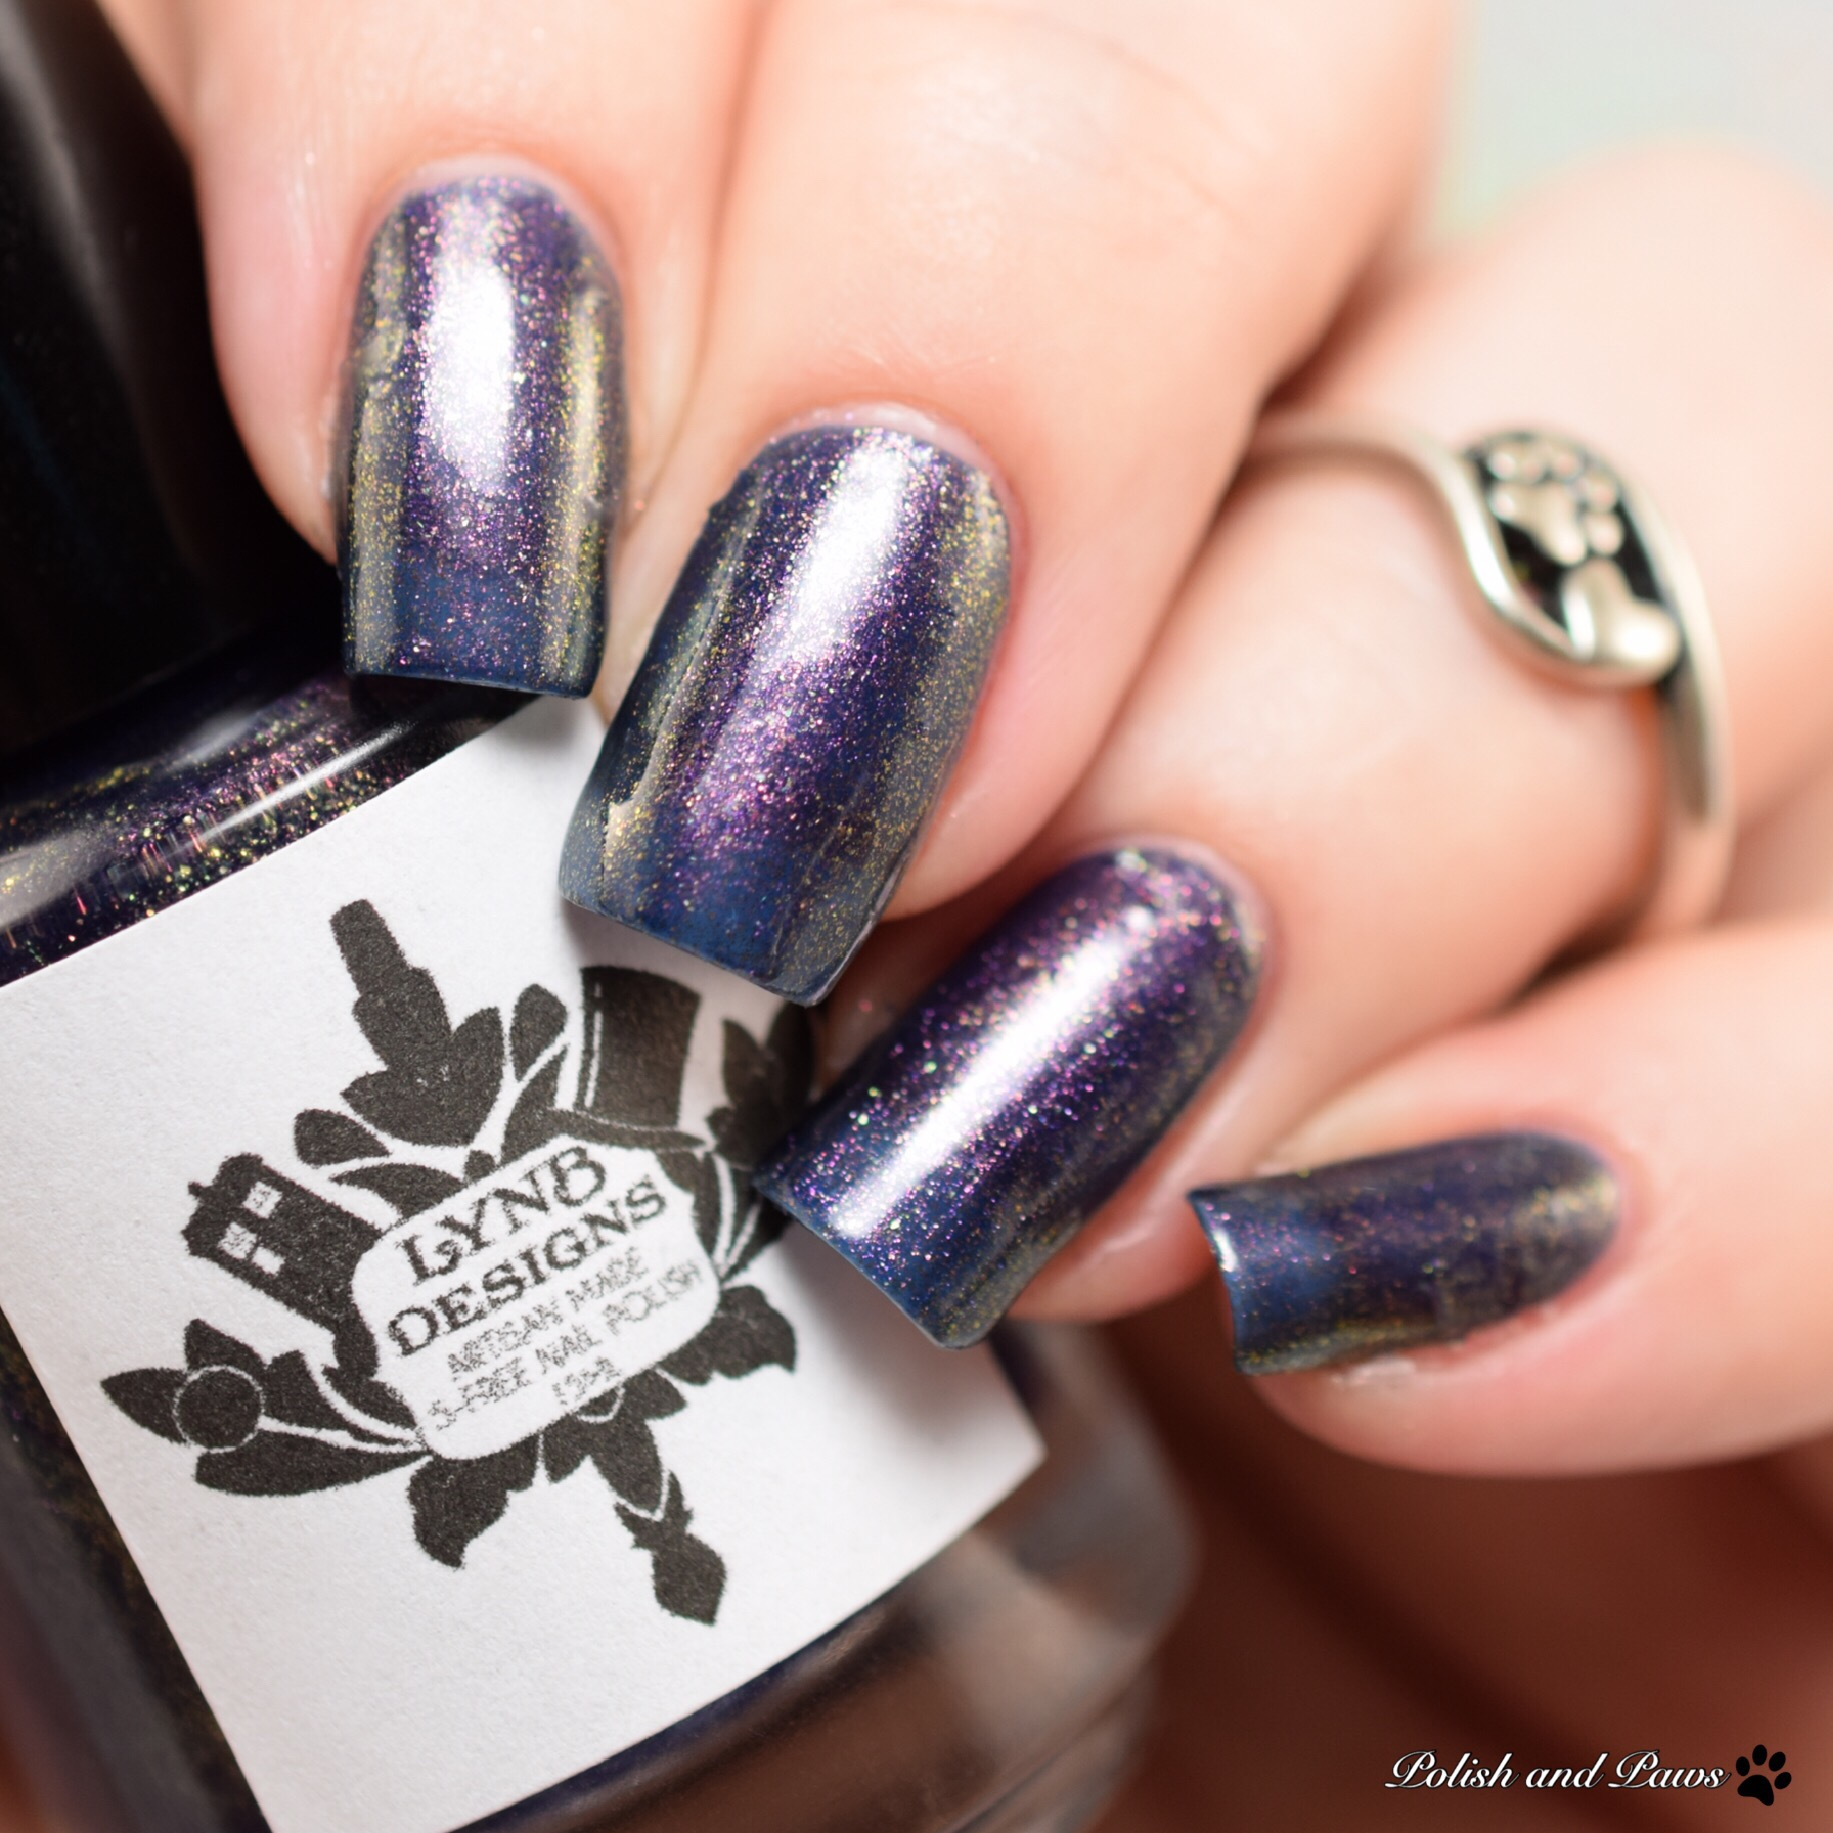 LynB Designs Be Your Own Princess Collection | Polish and Paws